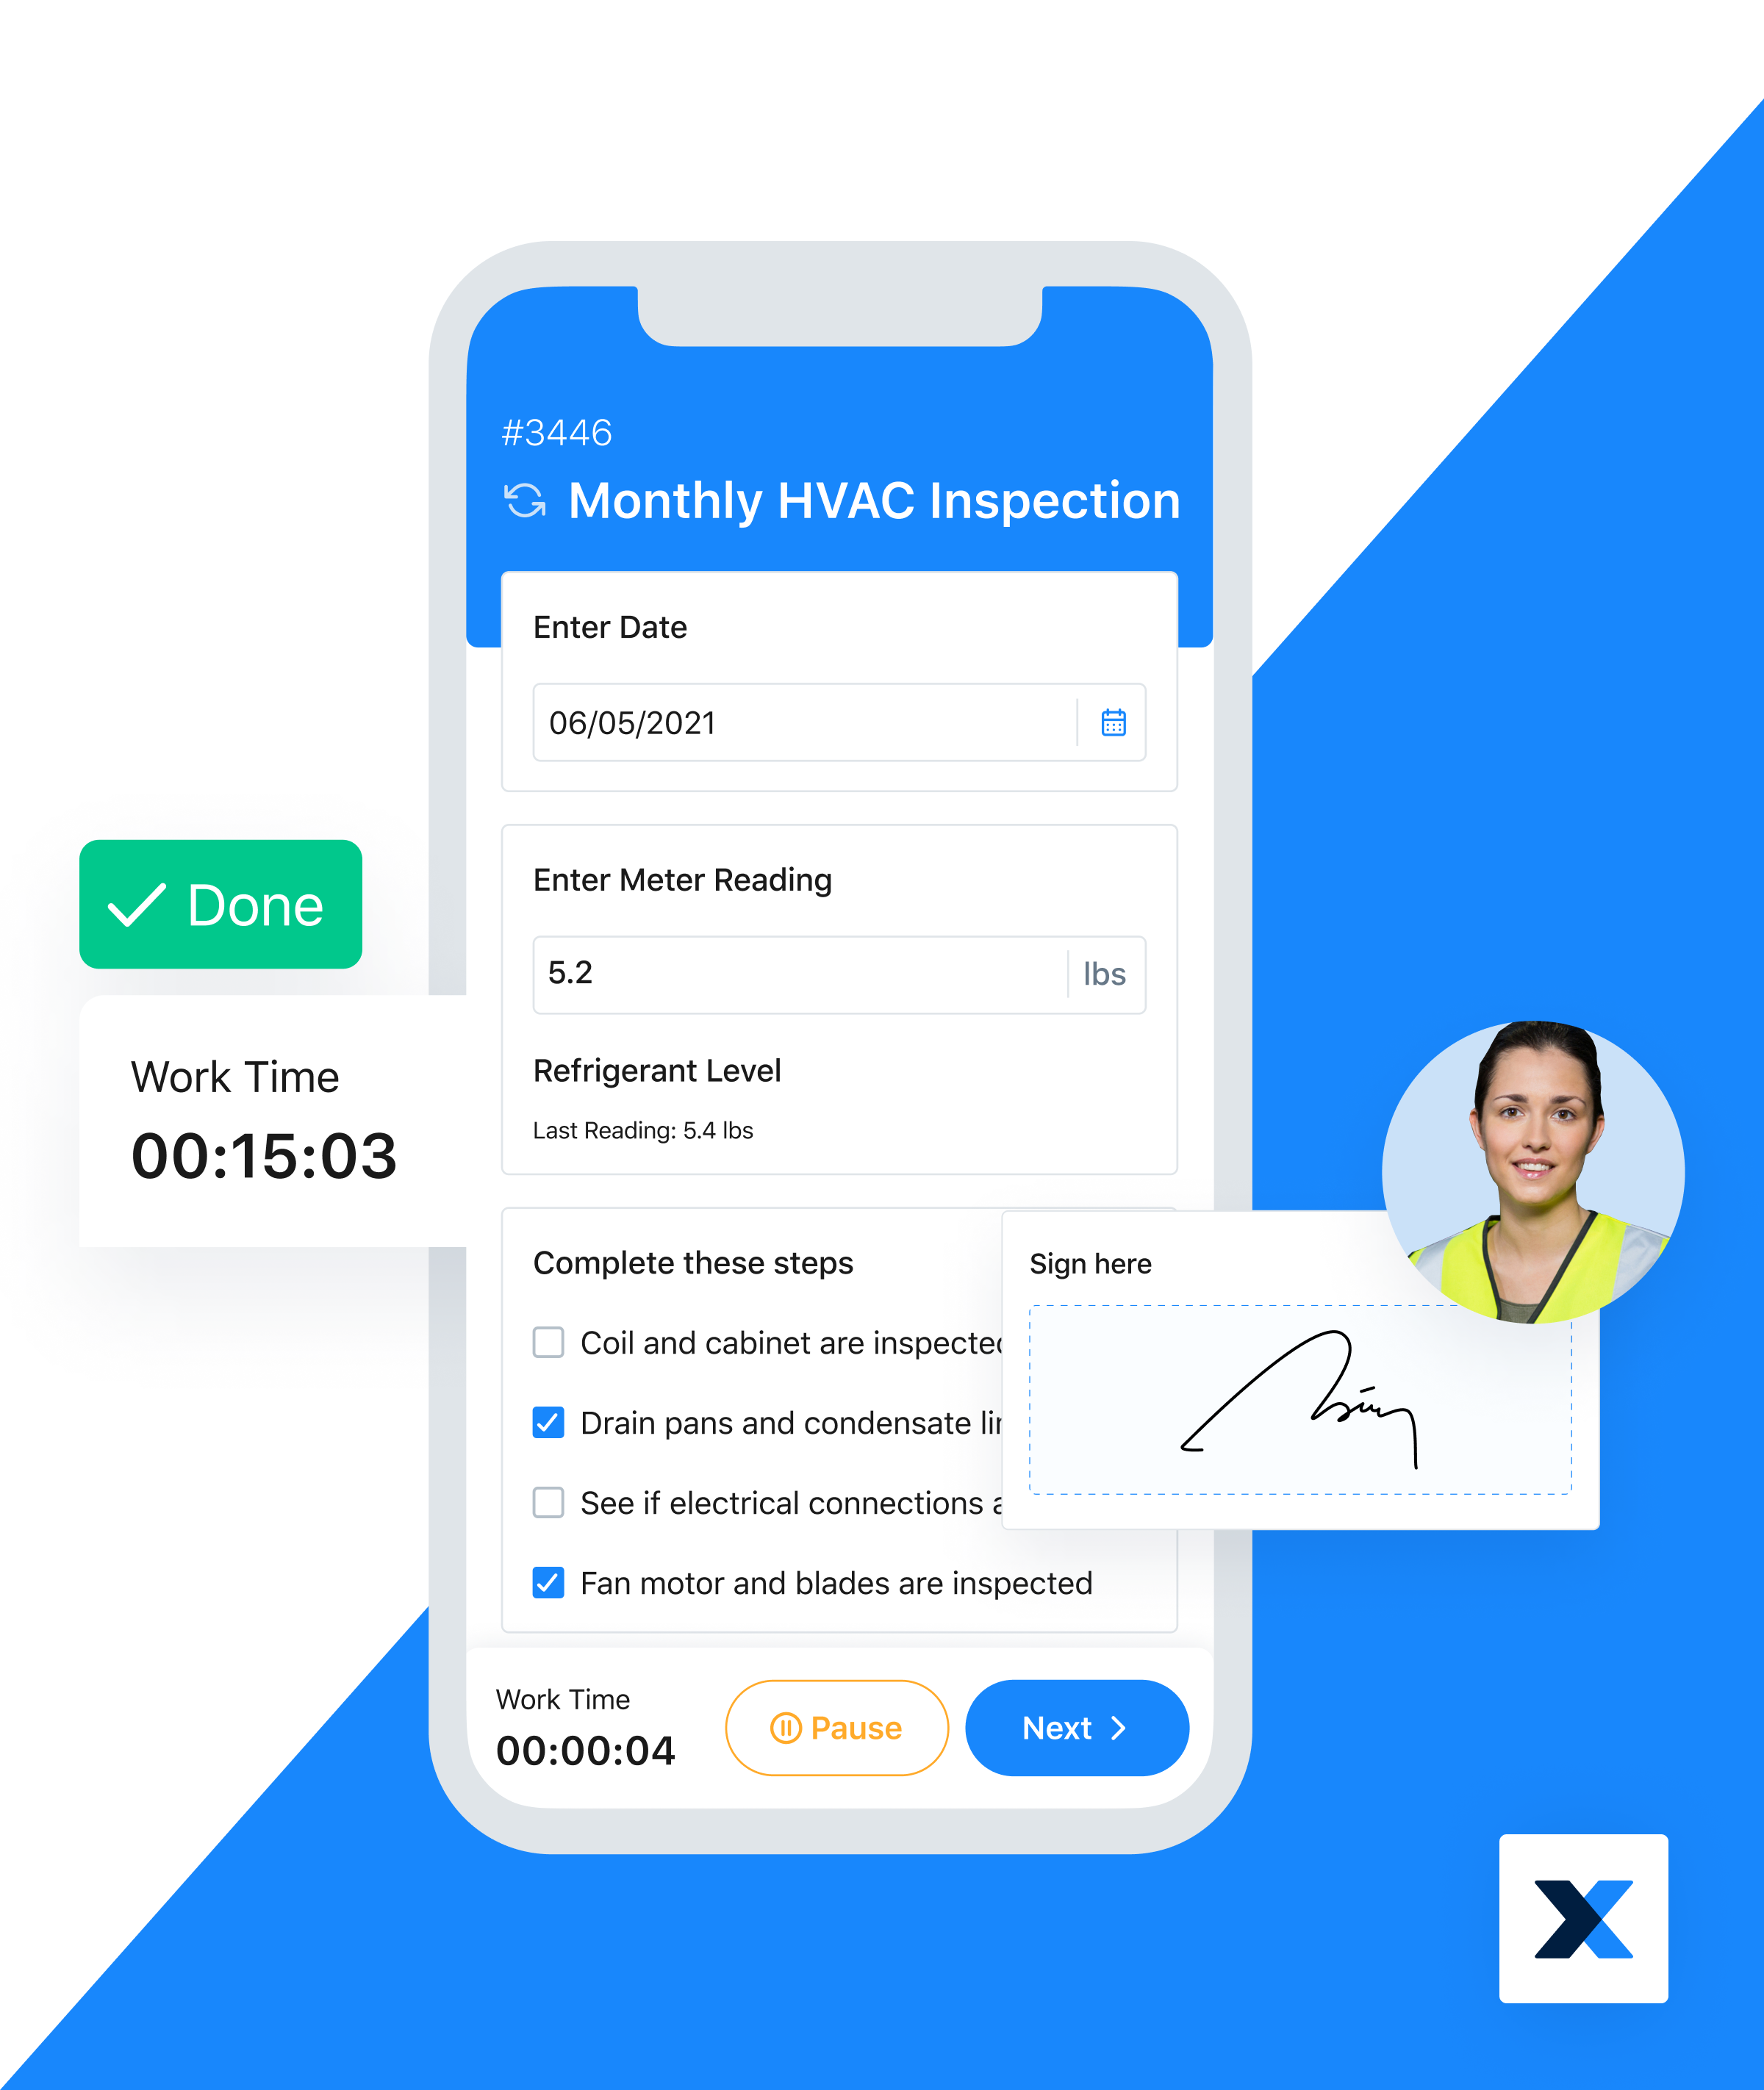 MaintainX Software - Track Work Time, Collect Signatures, and More - All From The Field